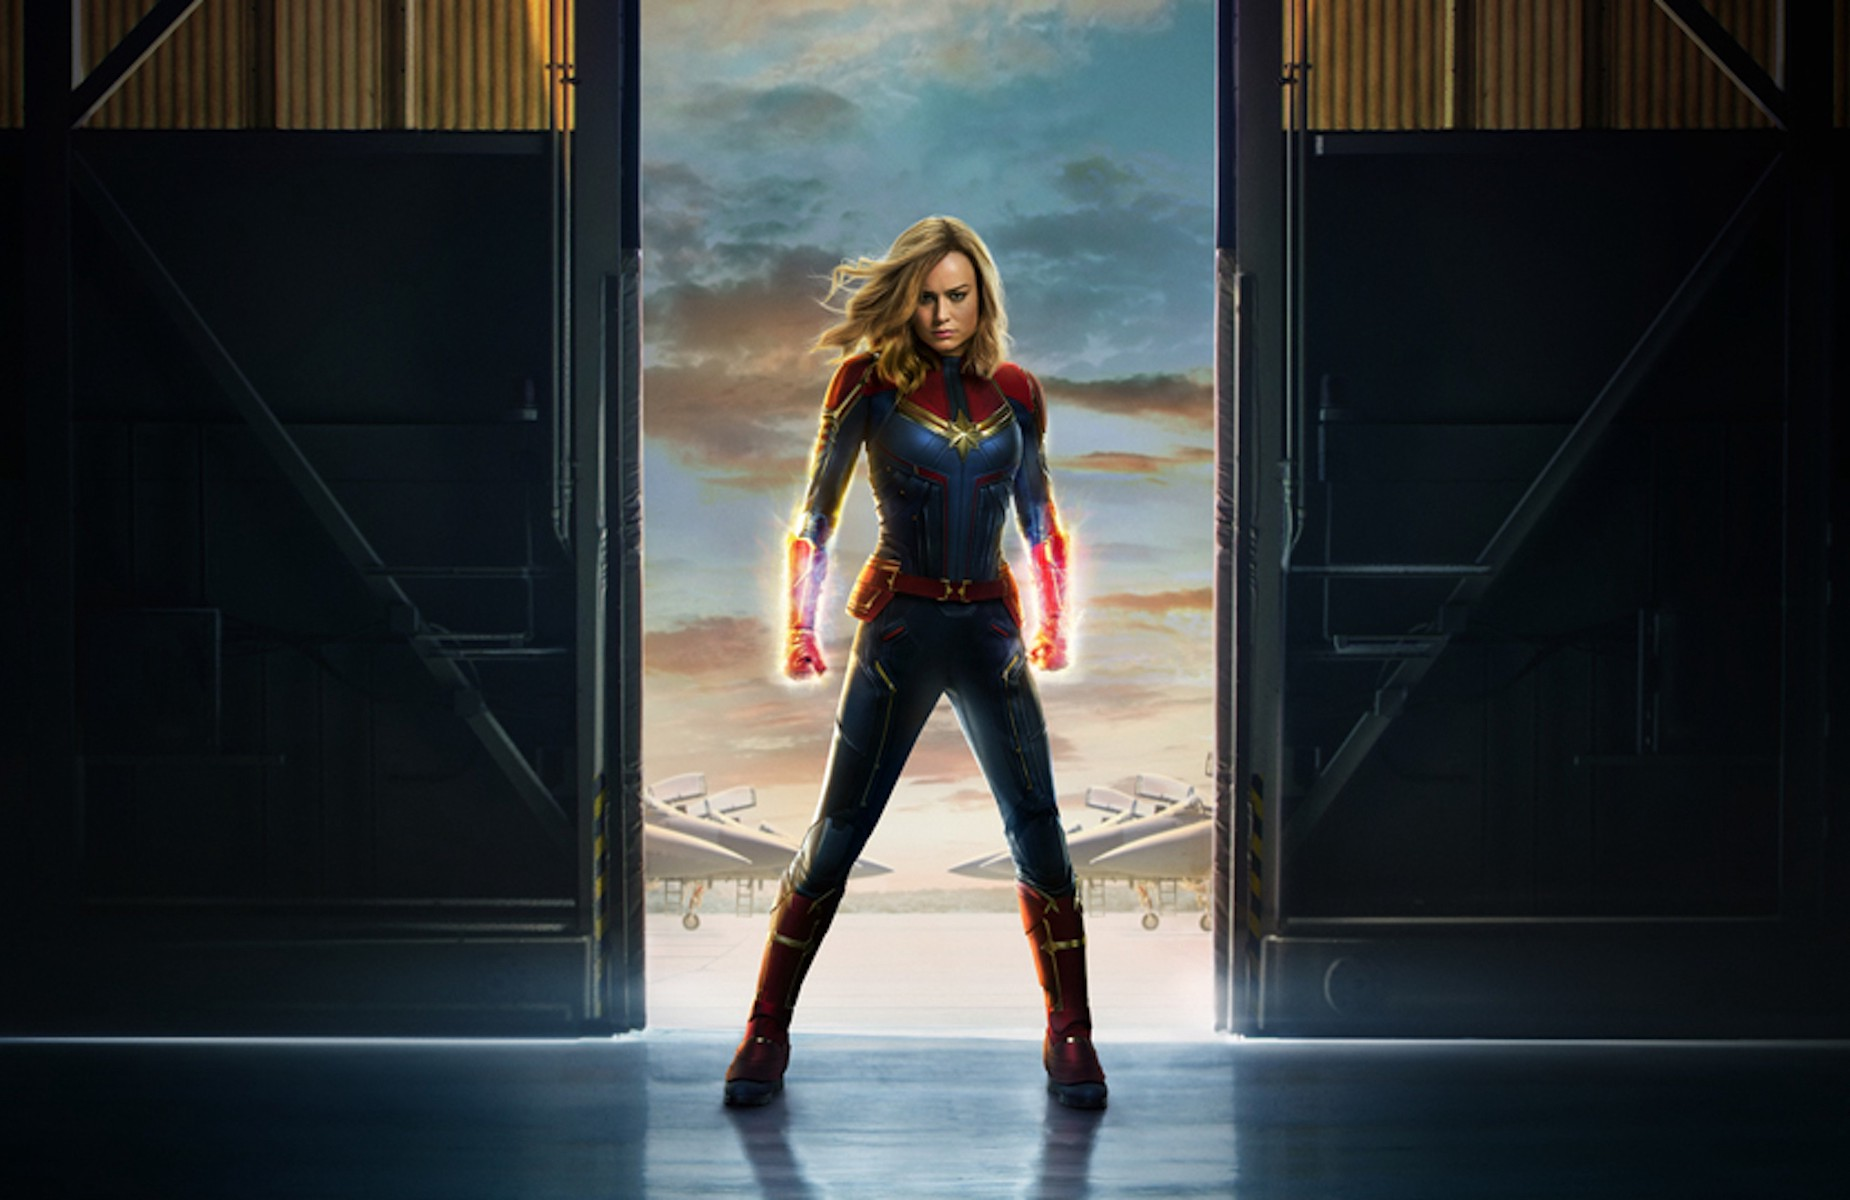 captain marvel might not be the feminist phenomenon we want